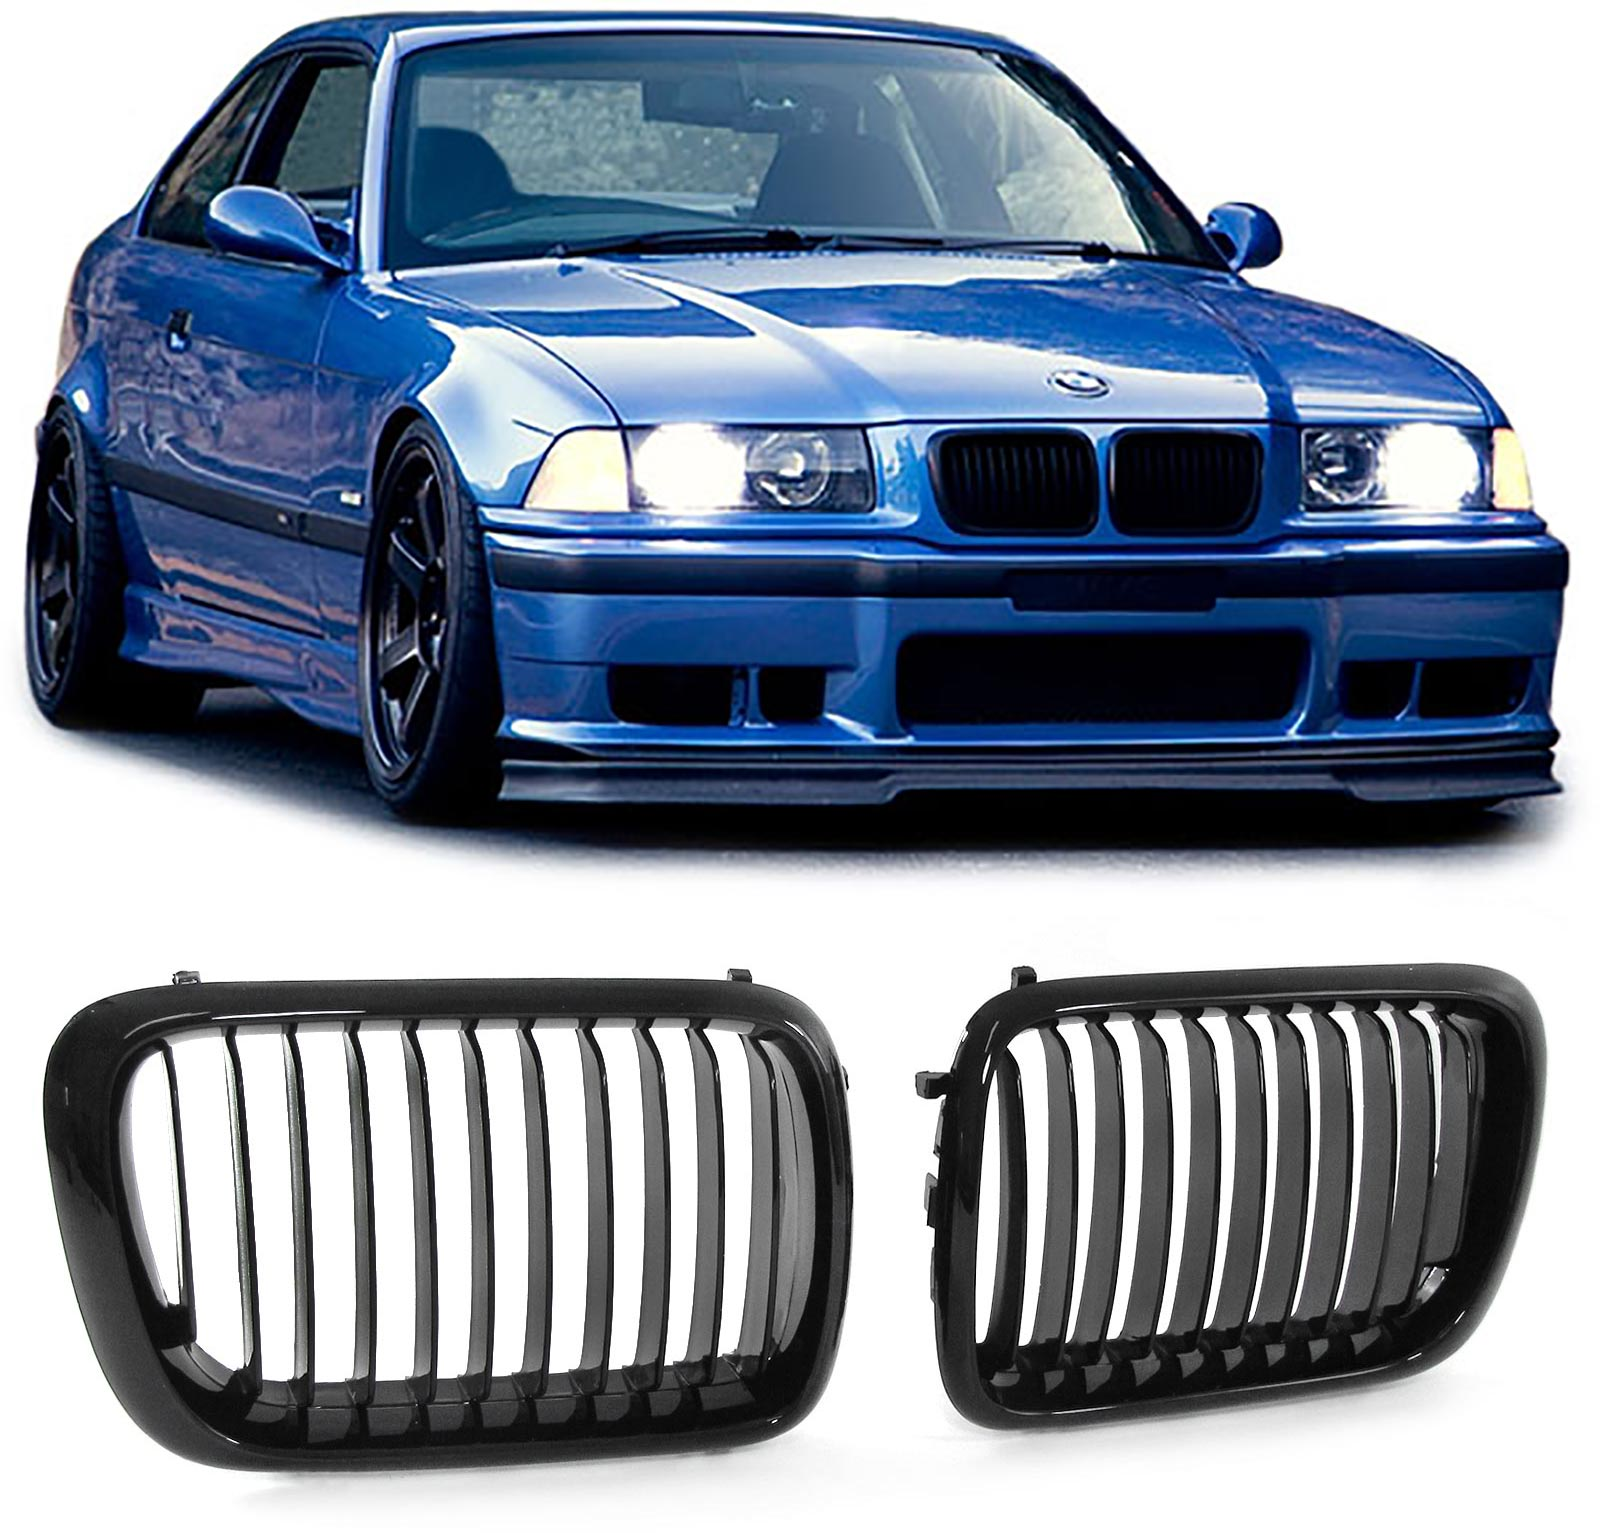 Grill E36 90-96 Shiny black